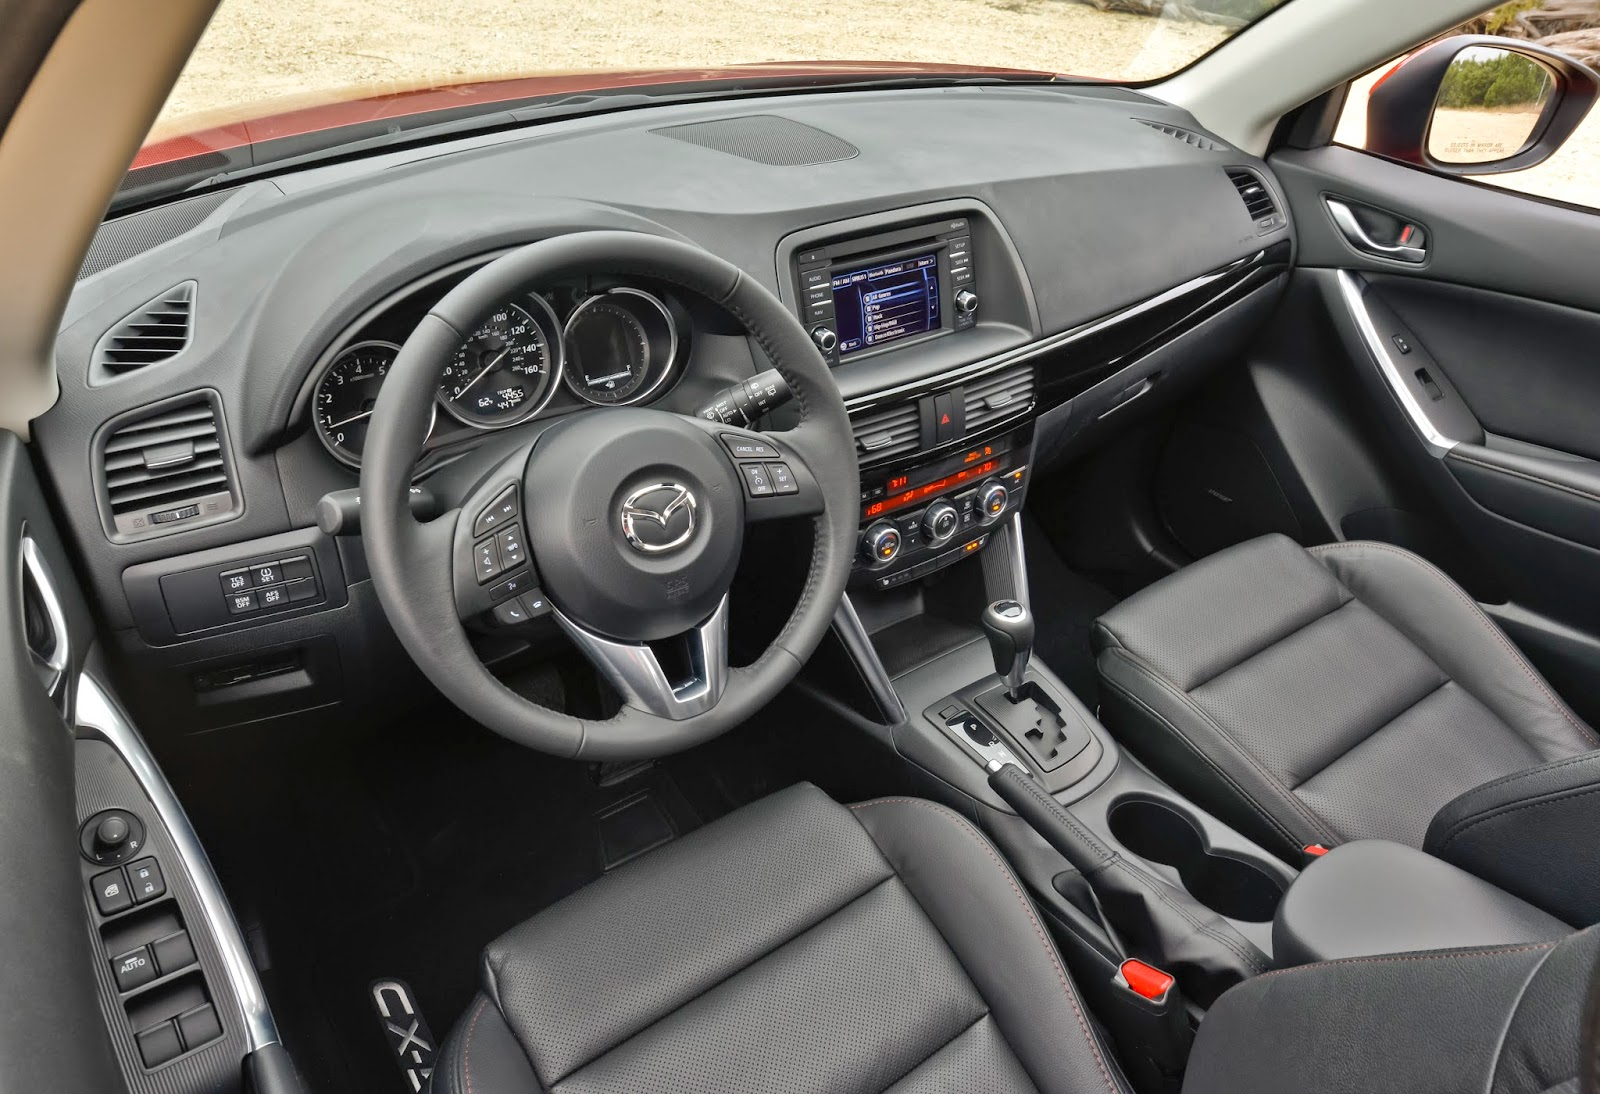 Interior view of 2015 Mazda CX-5